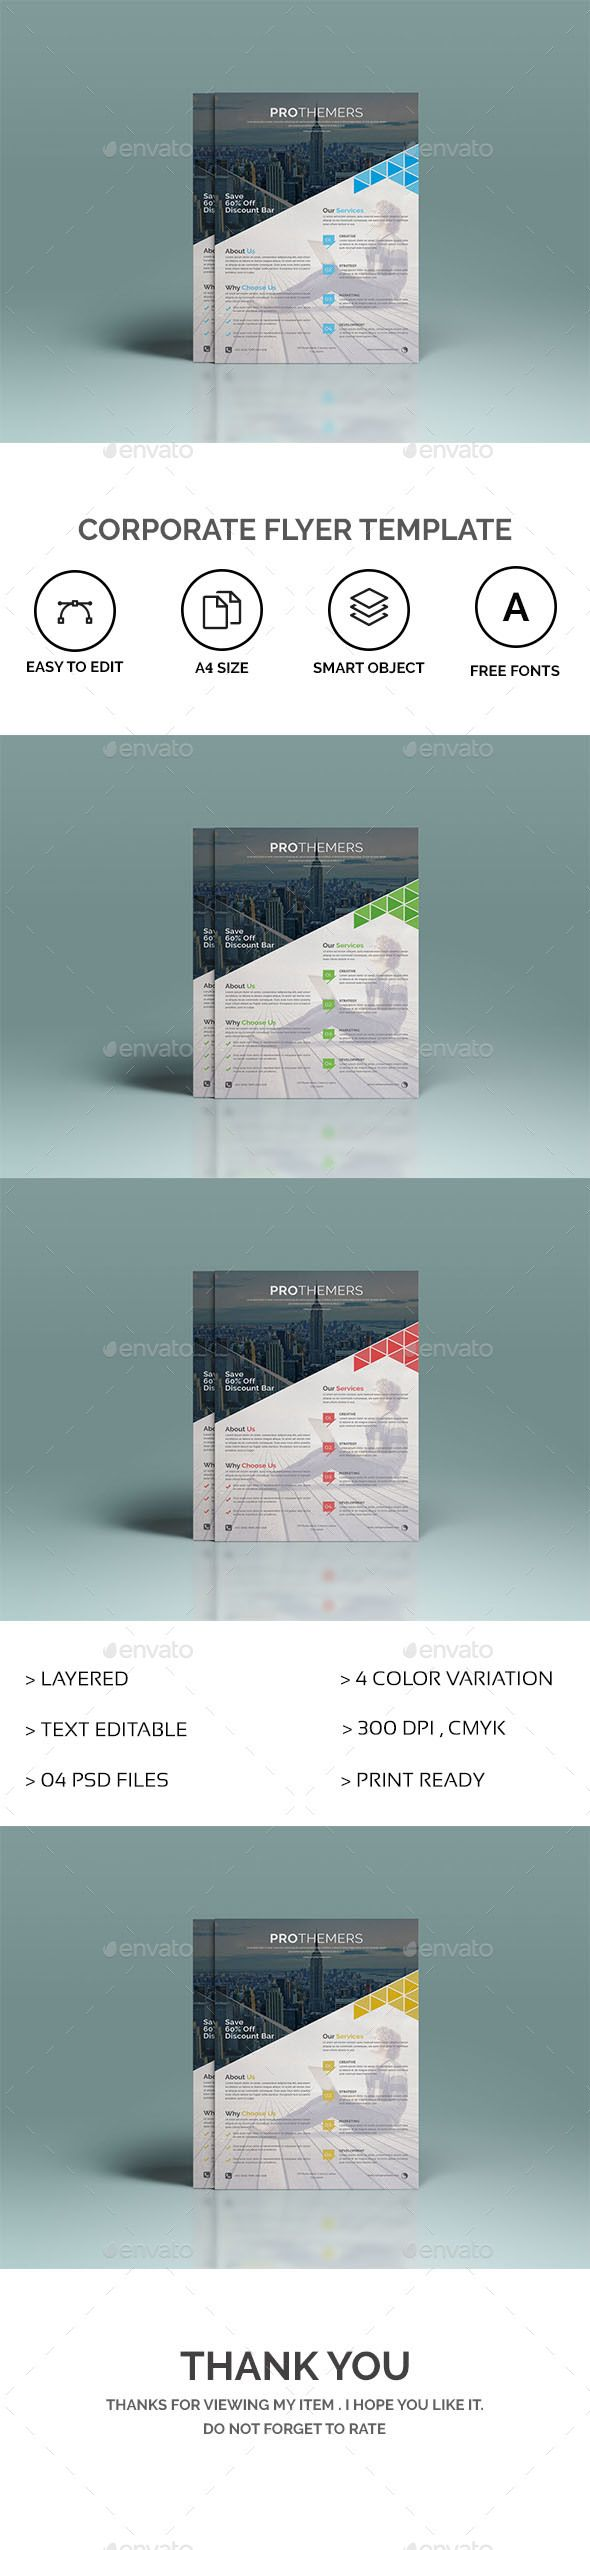 #Corporate #Flyer Template - Corporate Flyers Download here: https://graphicriver.net/item/corporate-flyer-template/20183047?ref=alena994